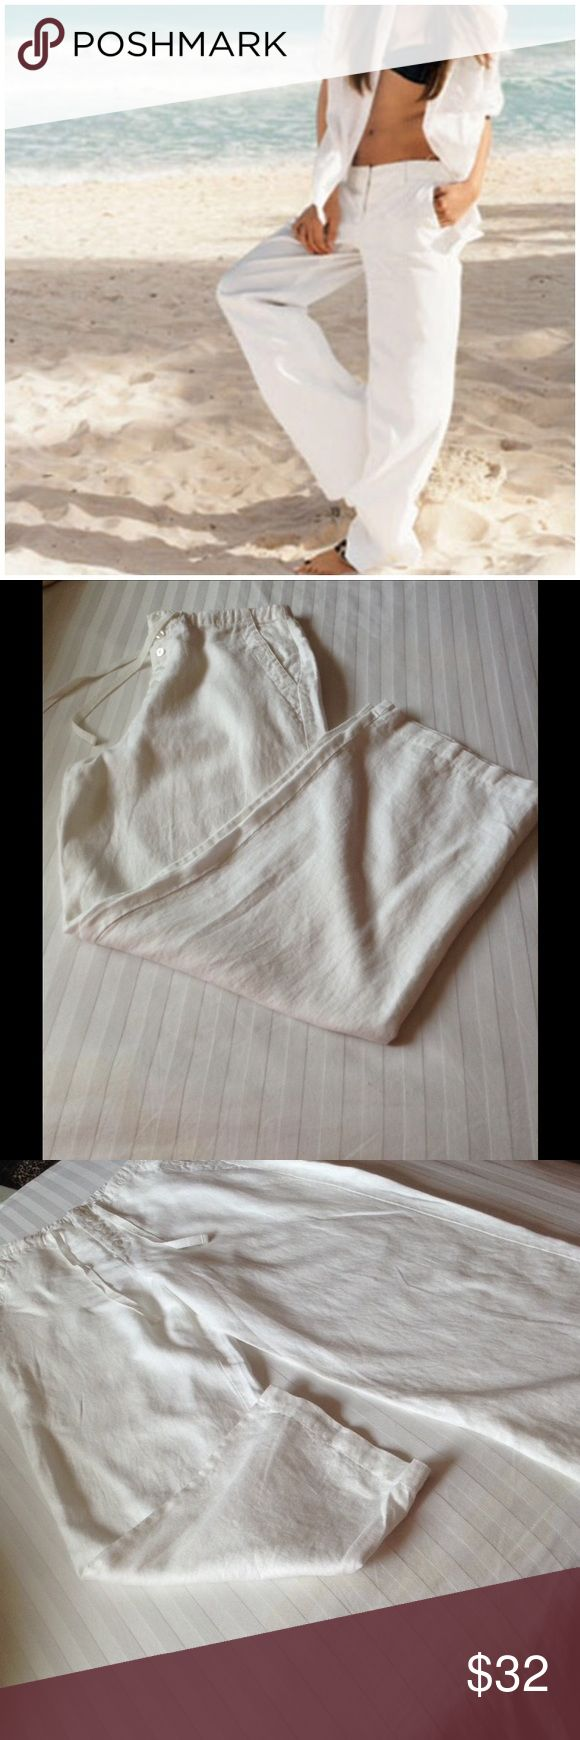 REAL COMFORT BEACH PANTS 10 NWOT REAL COMFORT WHITE 100% LINEN BEACH PANTS , POCKETS DRAW STRING AND BUTTONS 10 NWOT REAL COMFORT Pants Wide Leg